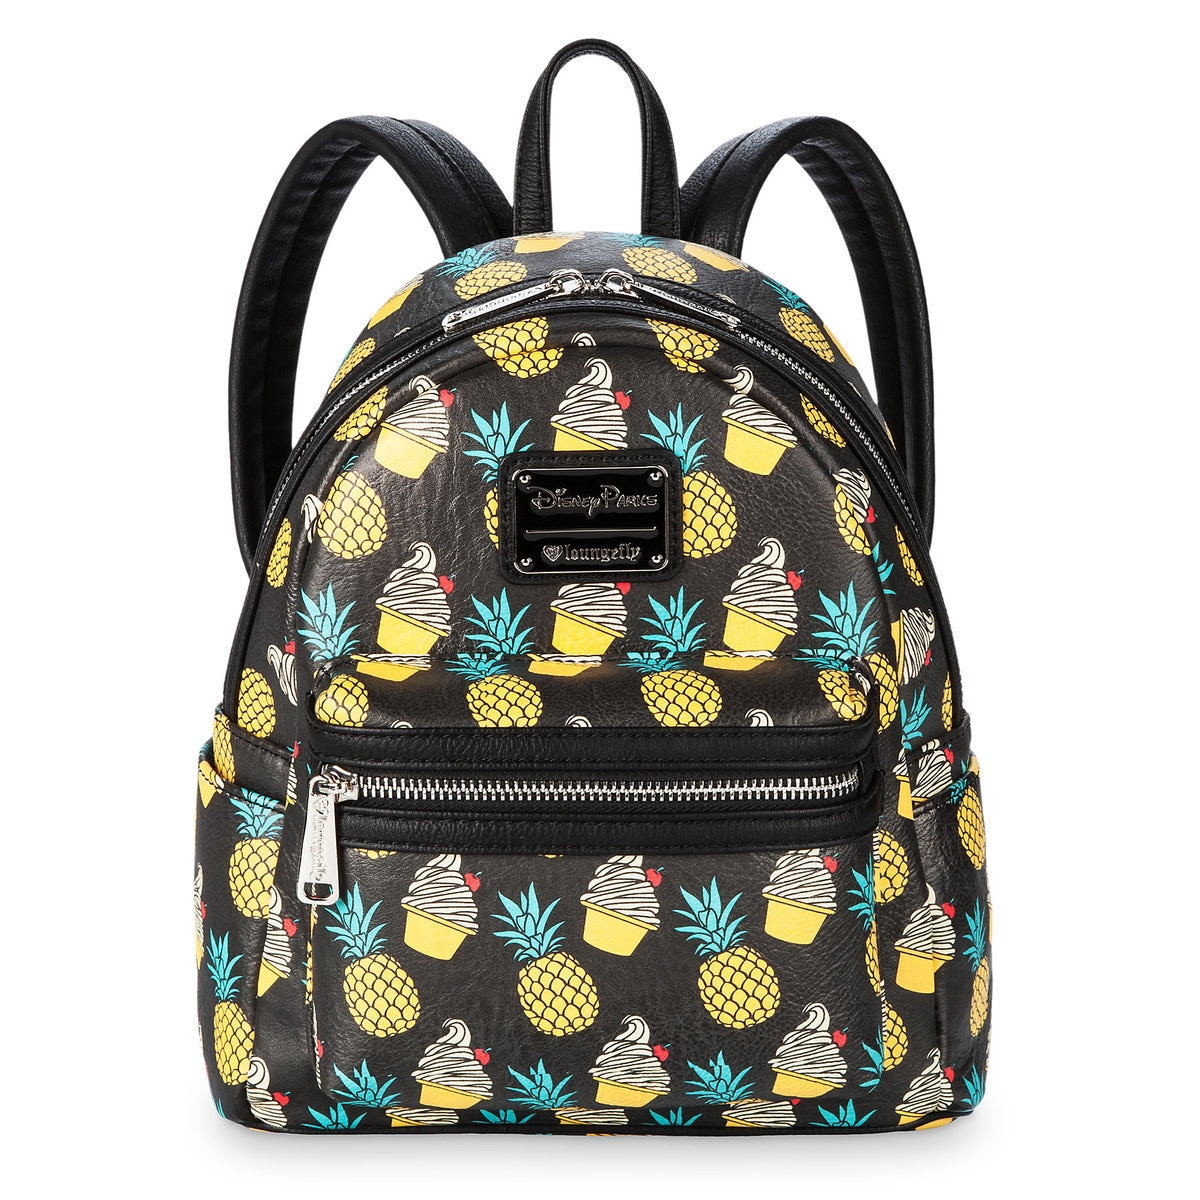 d32b68fca4a Product Image of Pineapple Swirl Mini Backpack by Loungefly   1